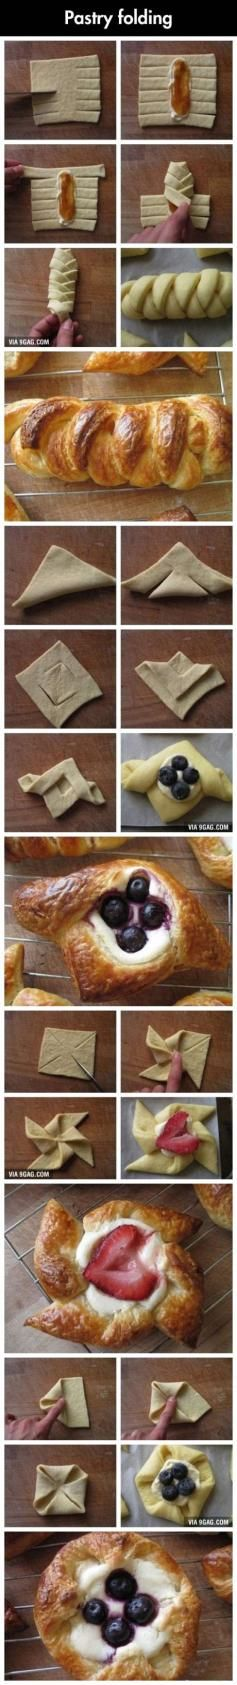 Crescent roll pastry or puff pastry to appetizer wreaths. Fill with ham & broccoli or chicken & asparagus or whatever